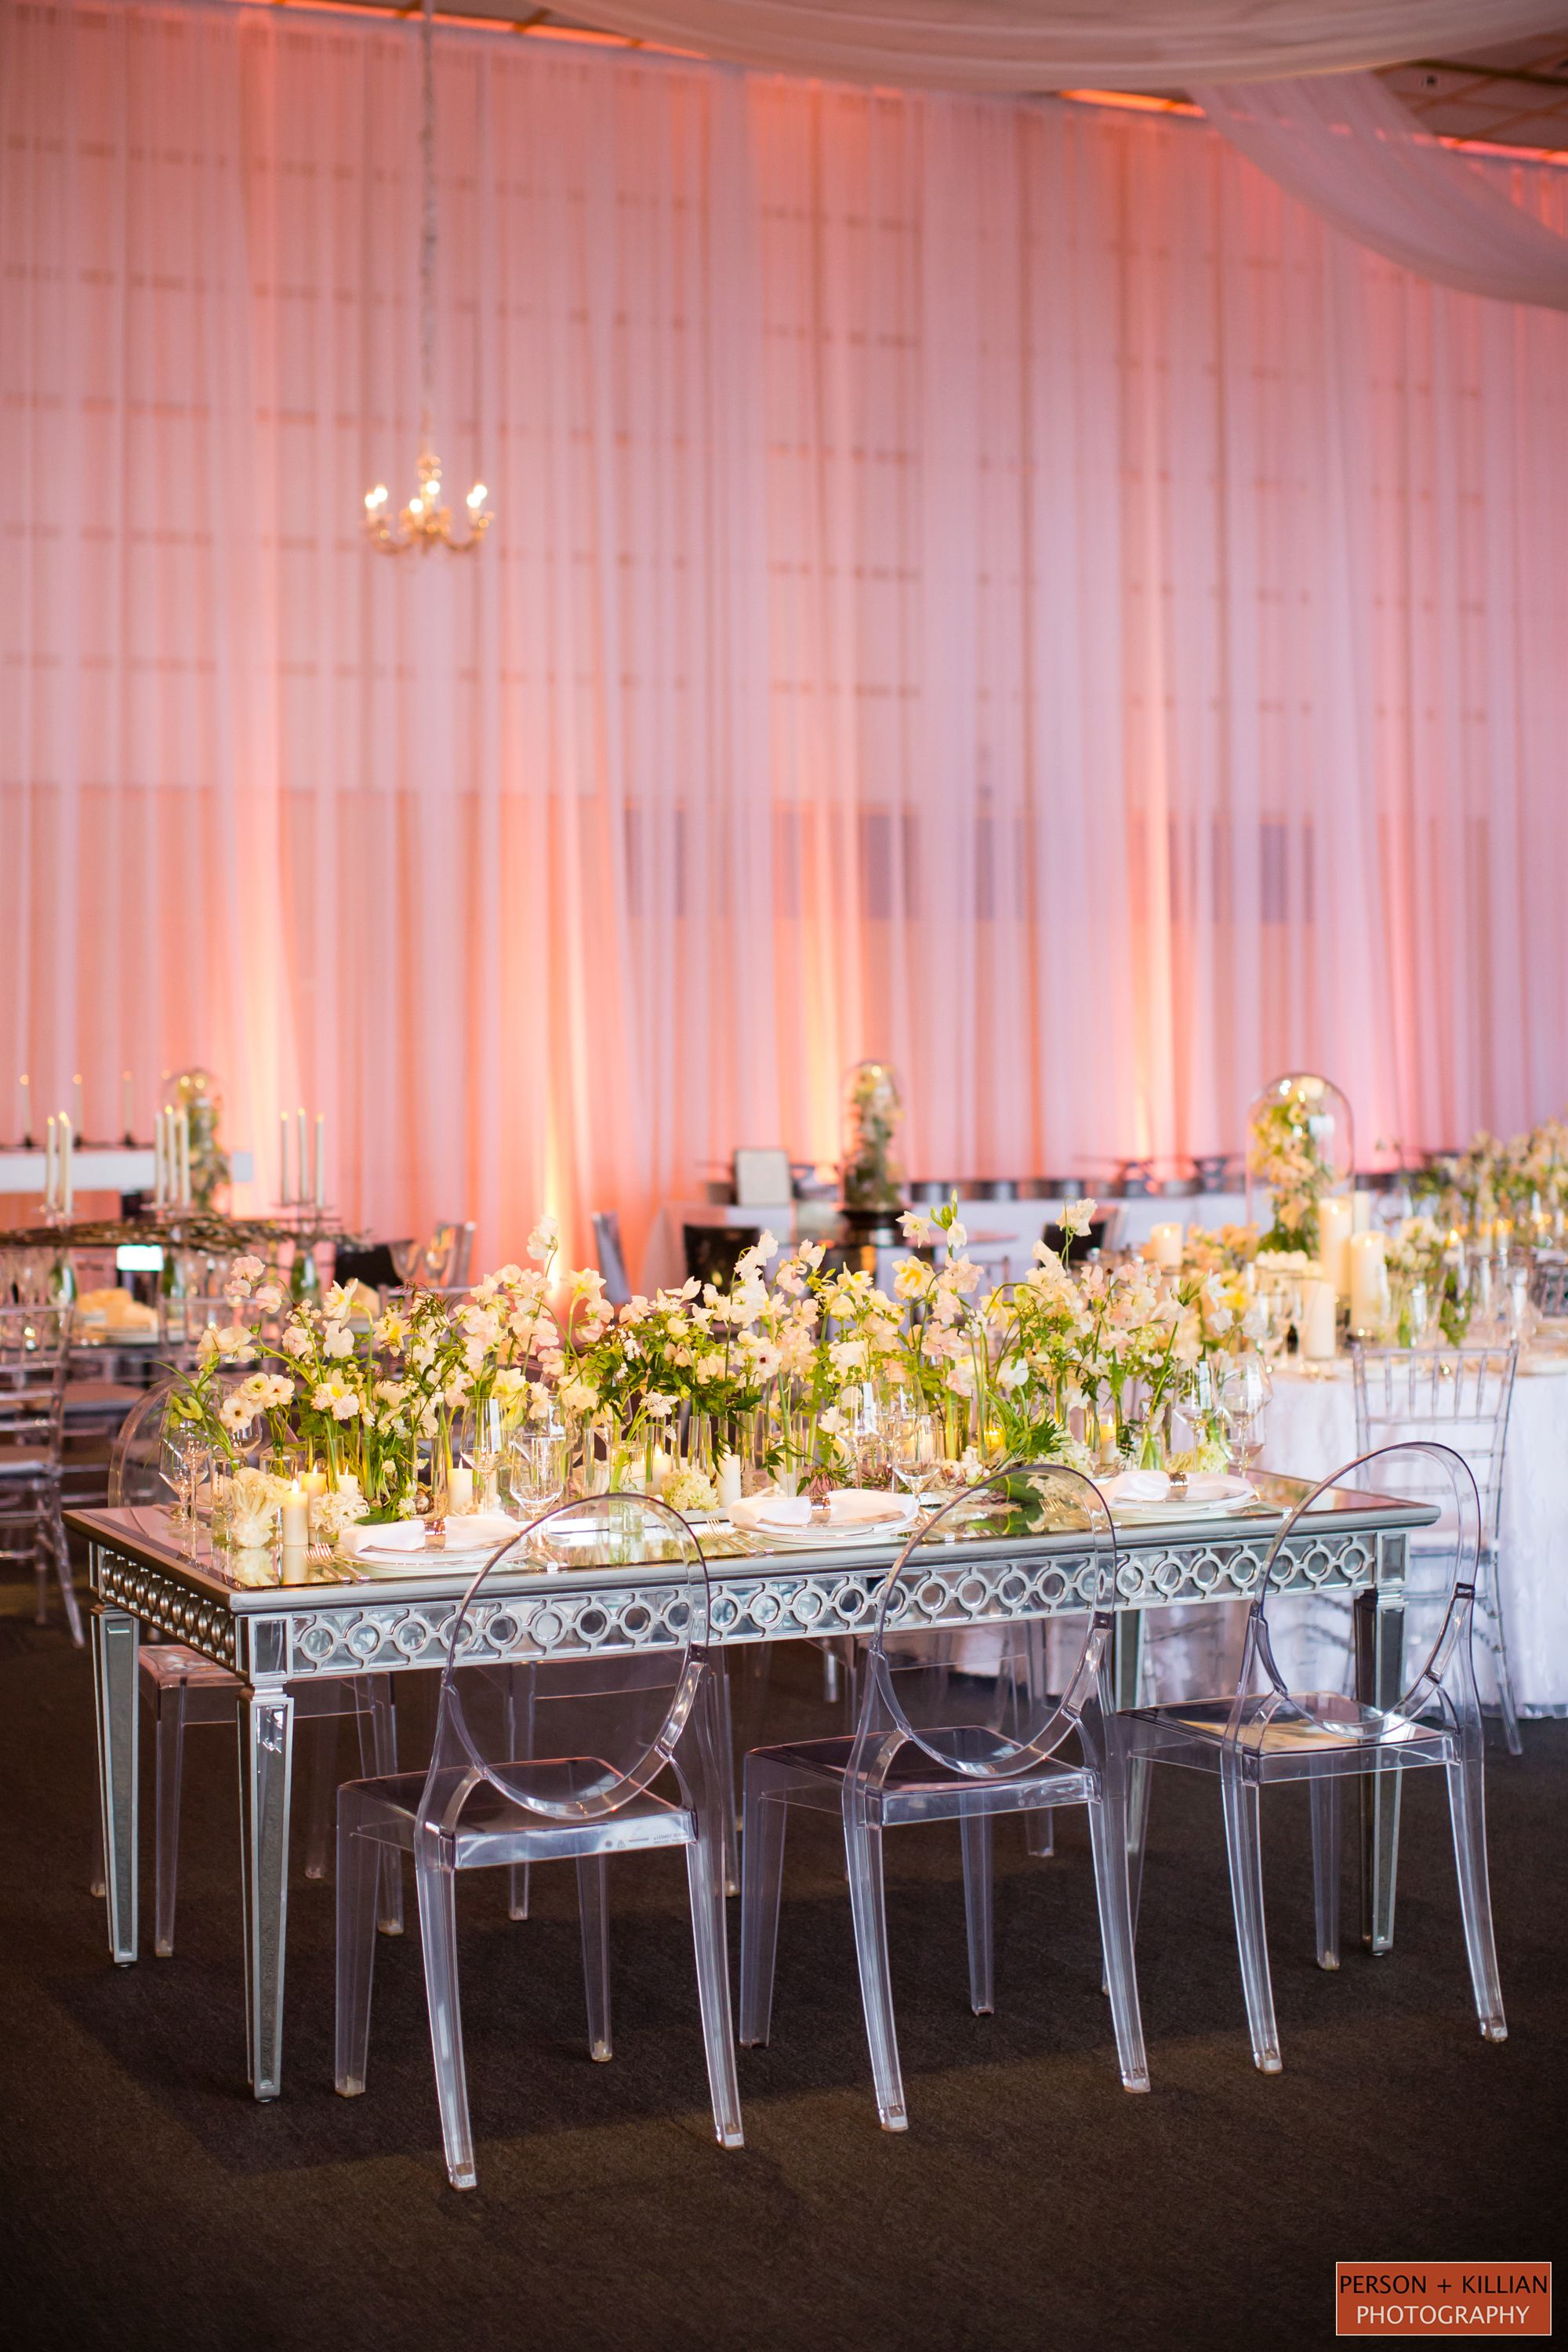 Jfk Library Event Photography Unique Wedding And Event Venues